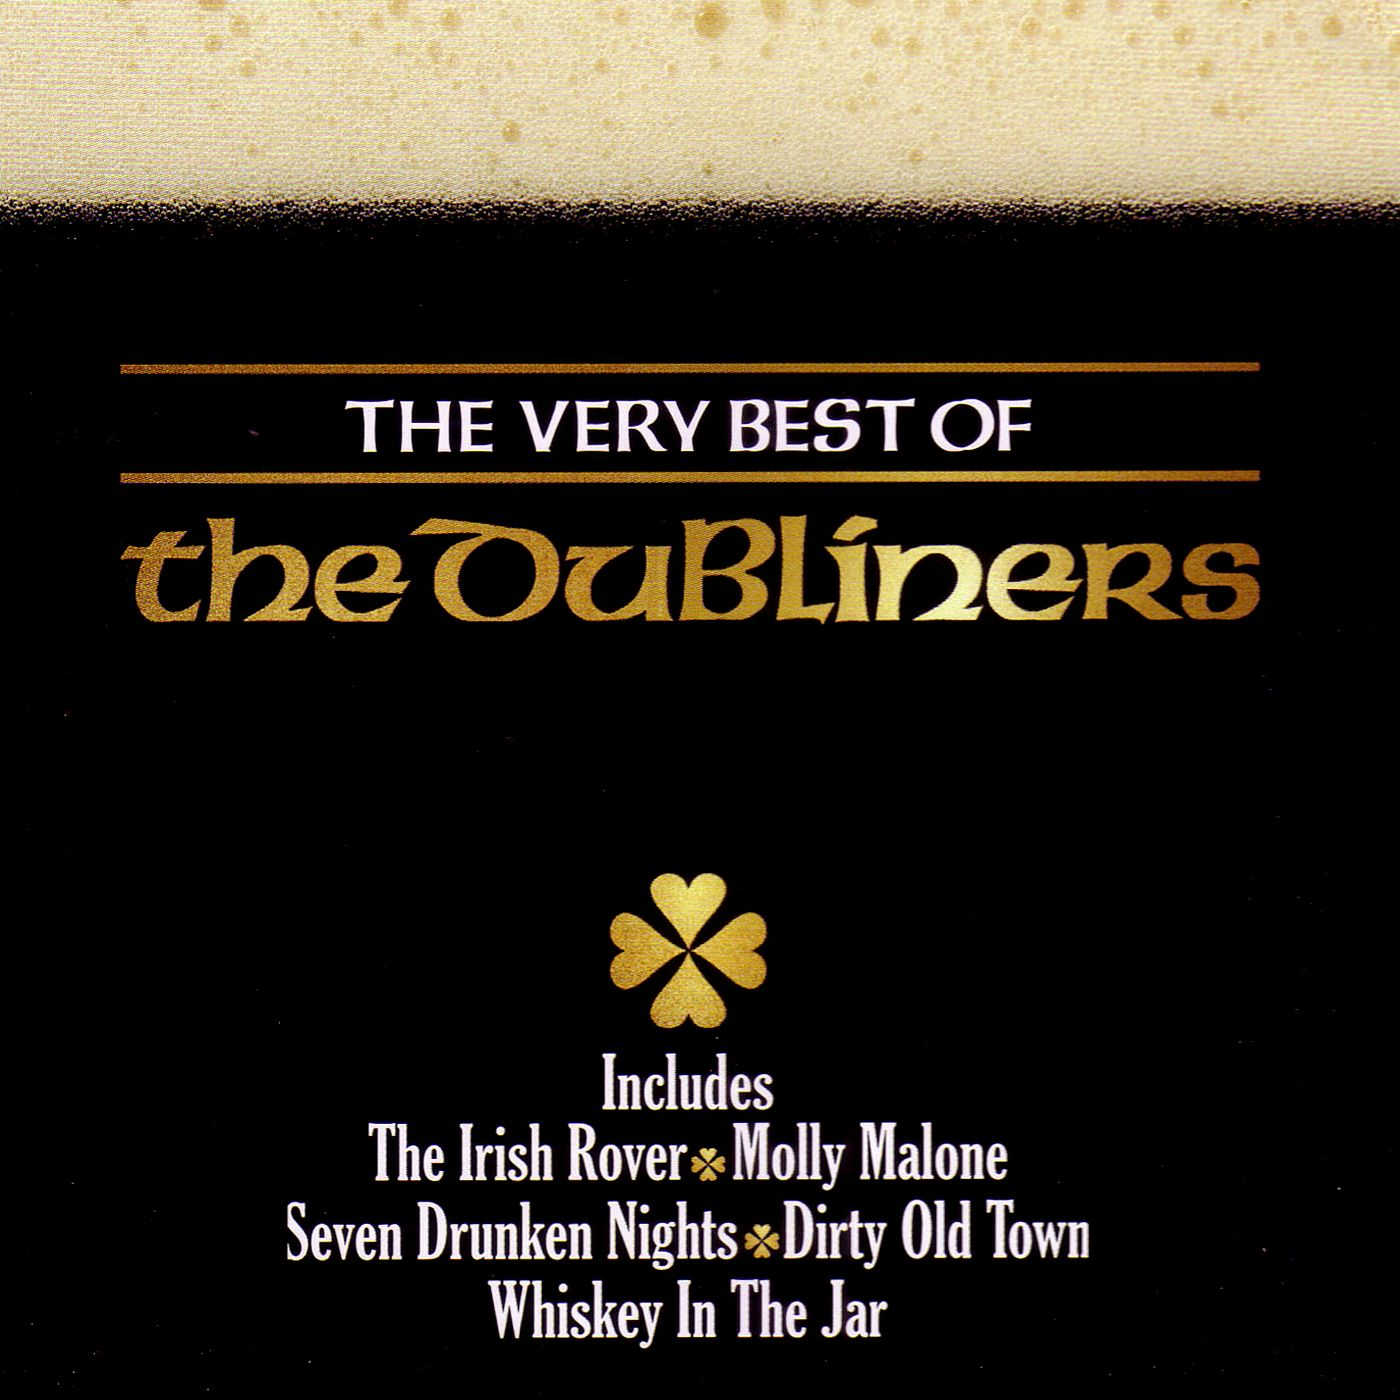 The Dubliners - The Very Best Of album cover